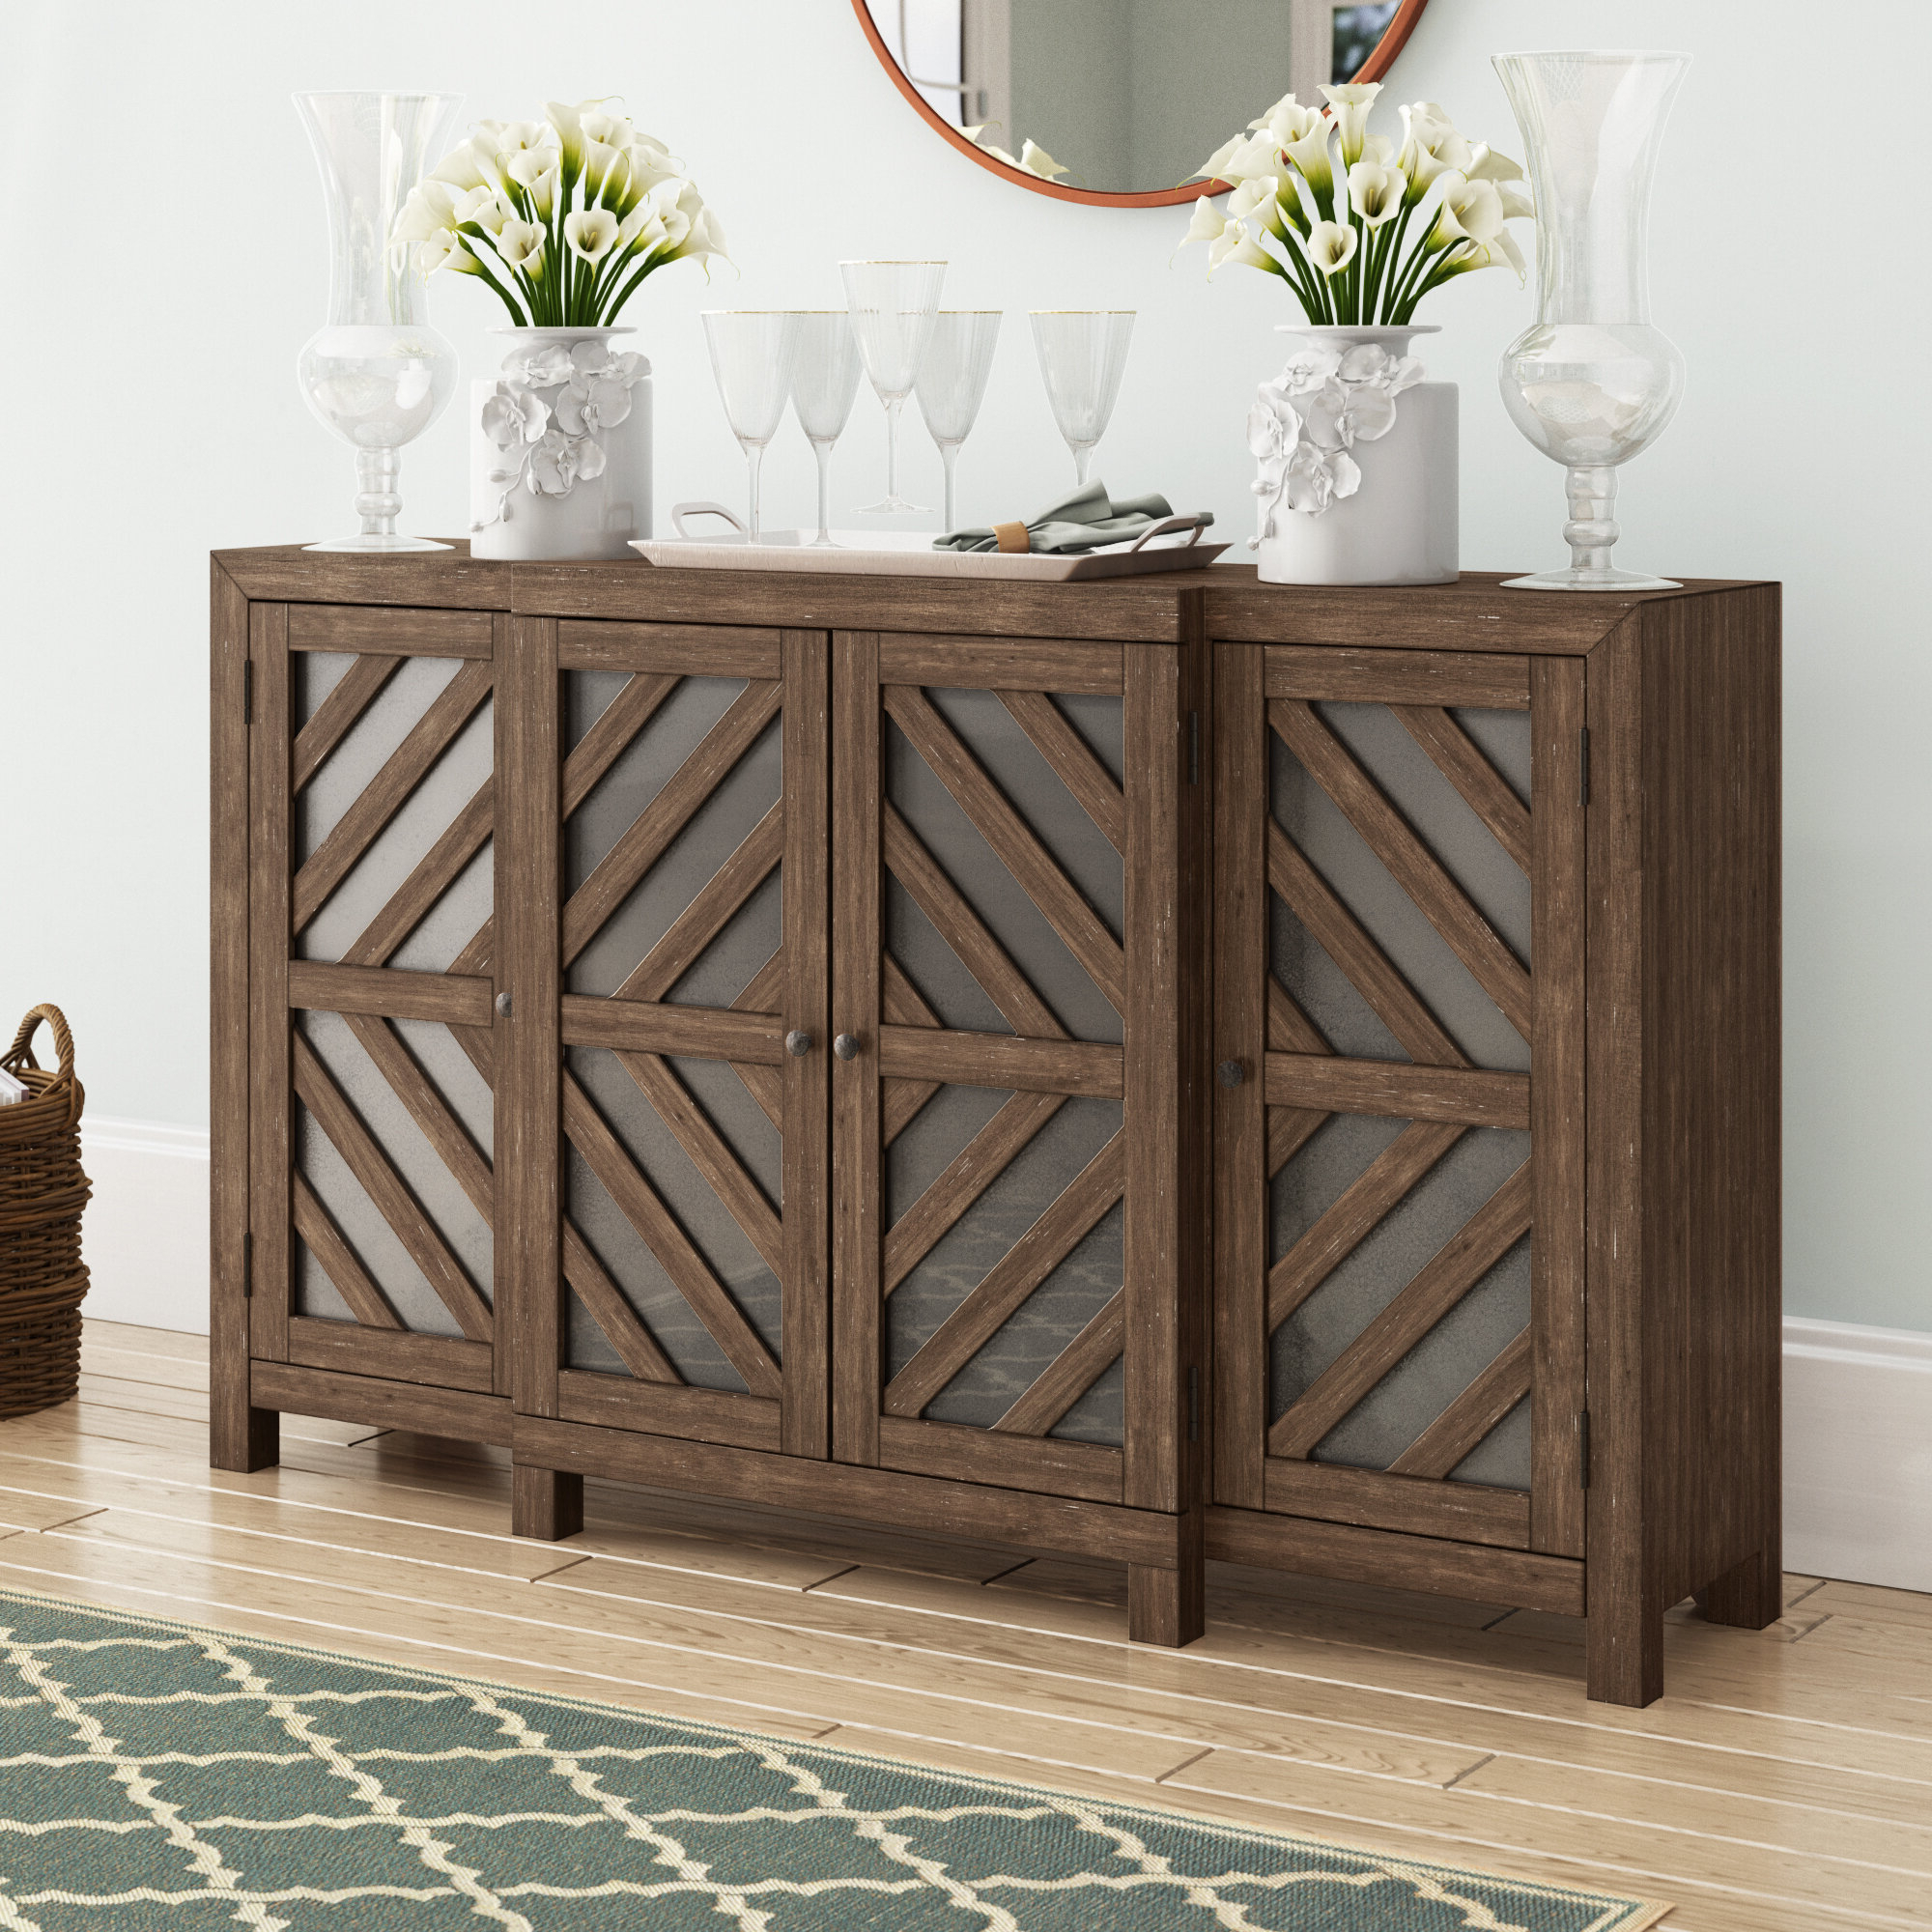 Union Rustic Lowrey Credenza & Reviews | Wayfair Pertaining To Lowrey Credenzas (View 20 of 20)